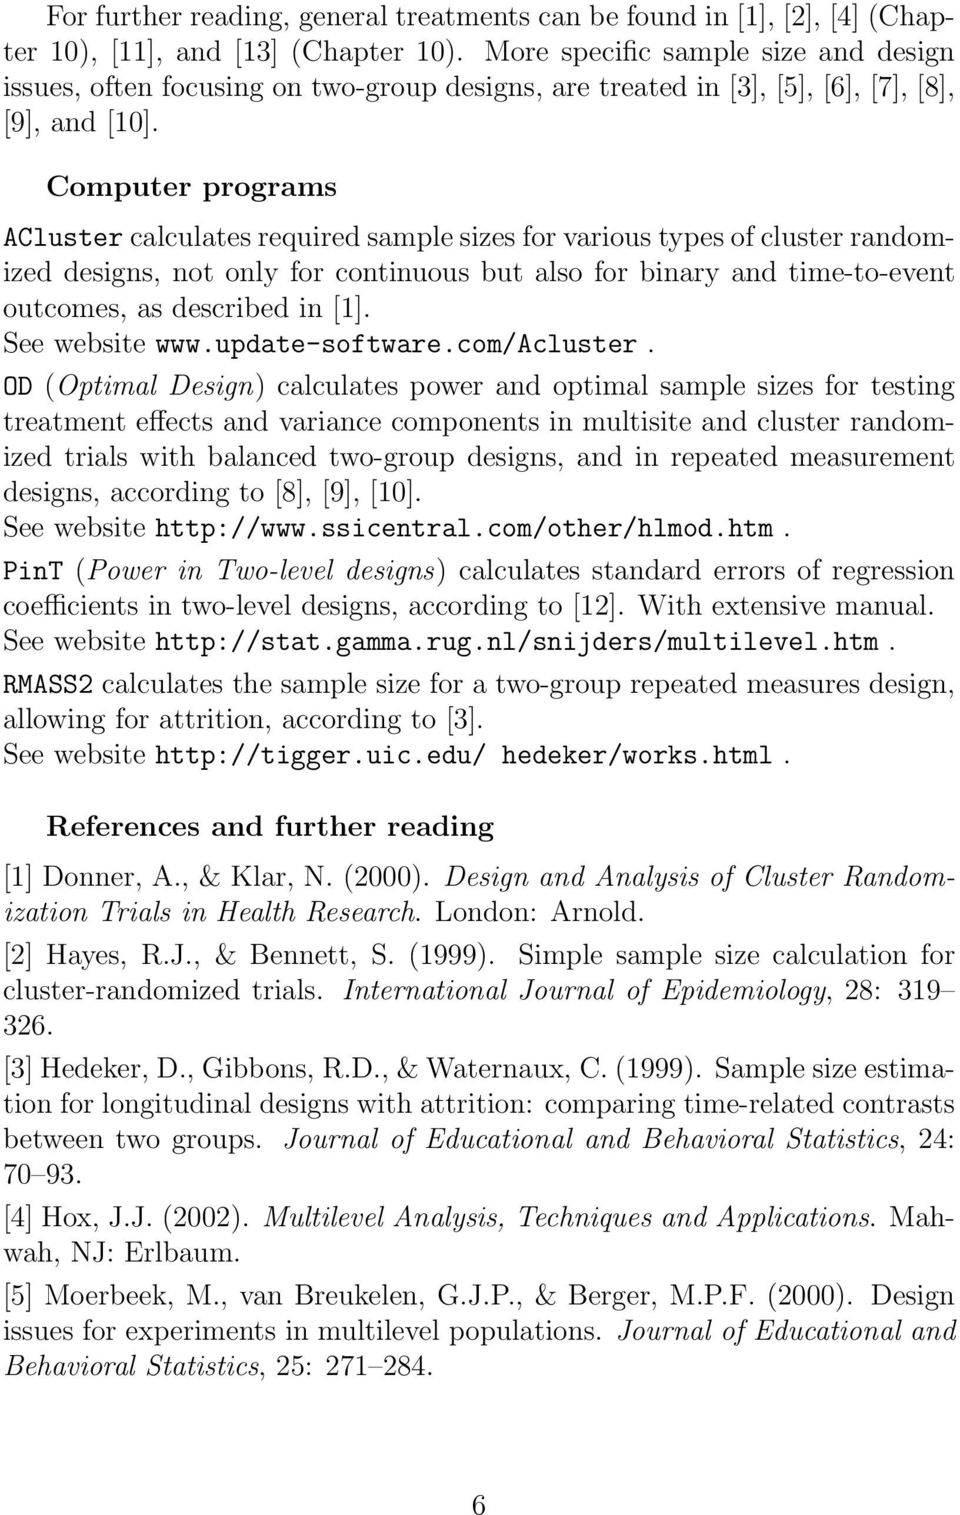 Computer programs ACluster calculates required sample sizes for various types of cluster randomized designs, not only for continuous but also for binary and time-to-event outcomes, as described in